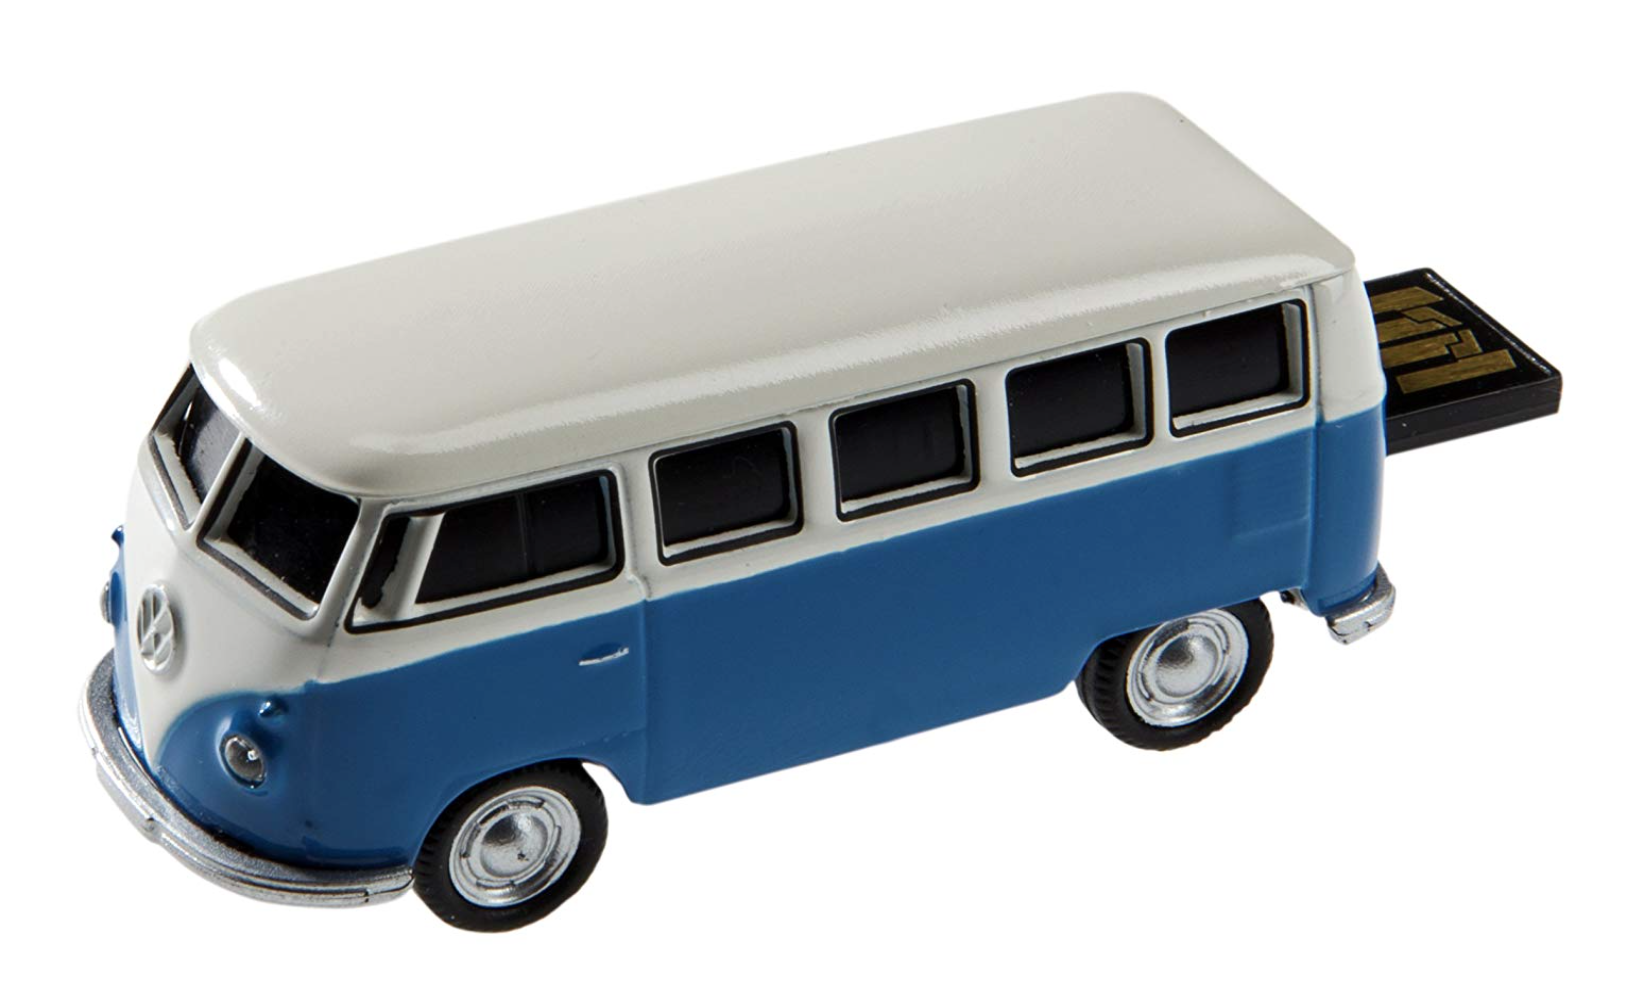 Campervan gifts - USB